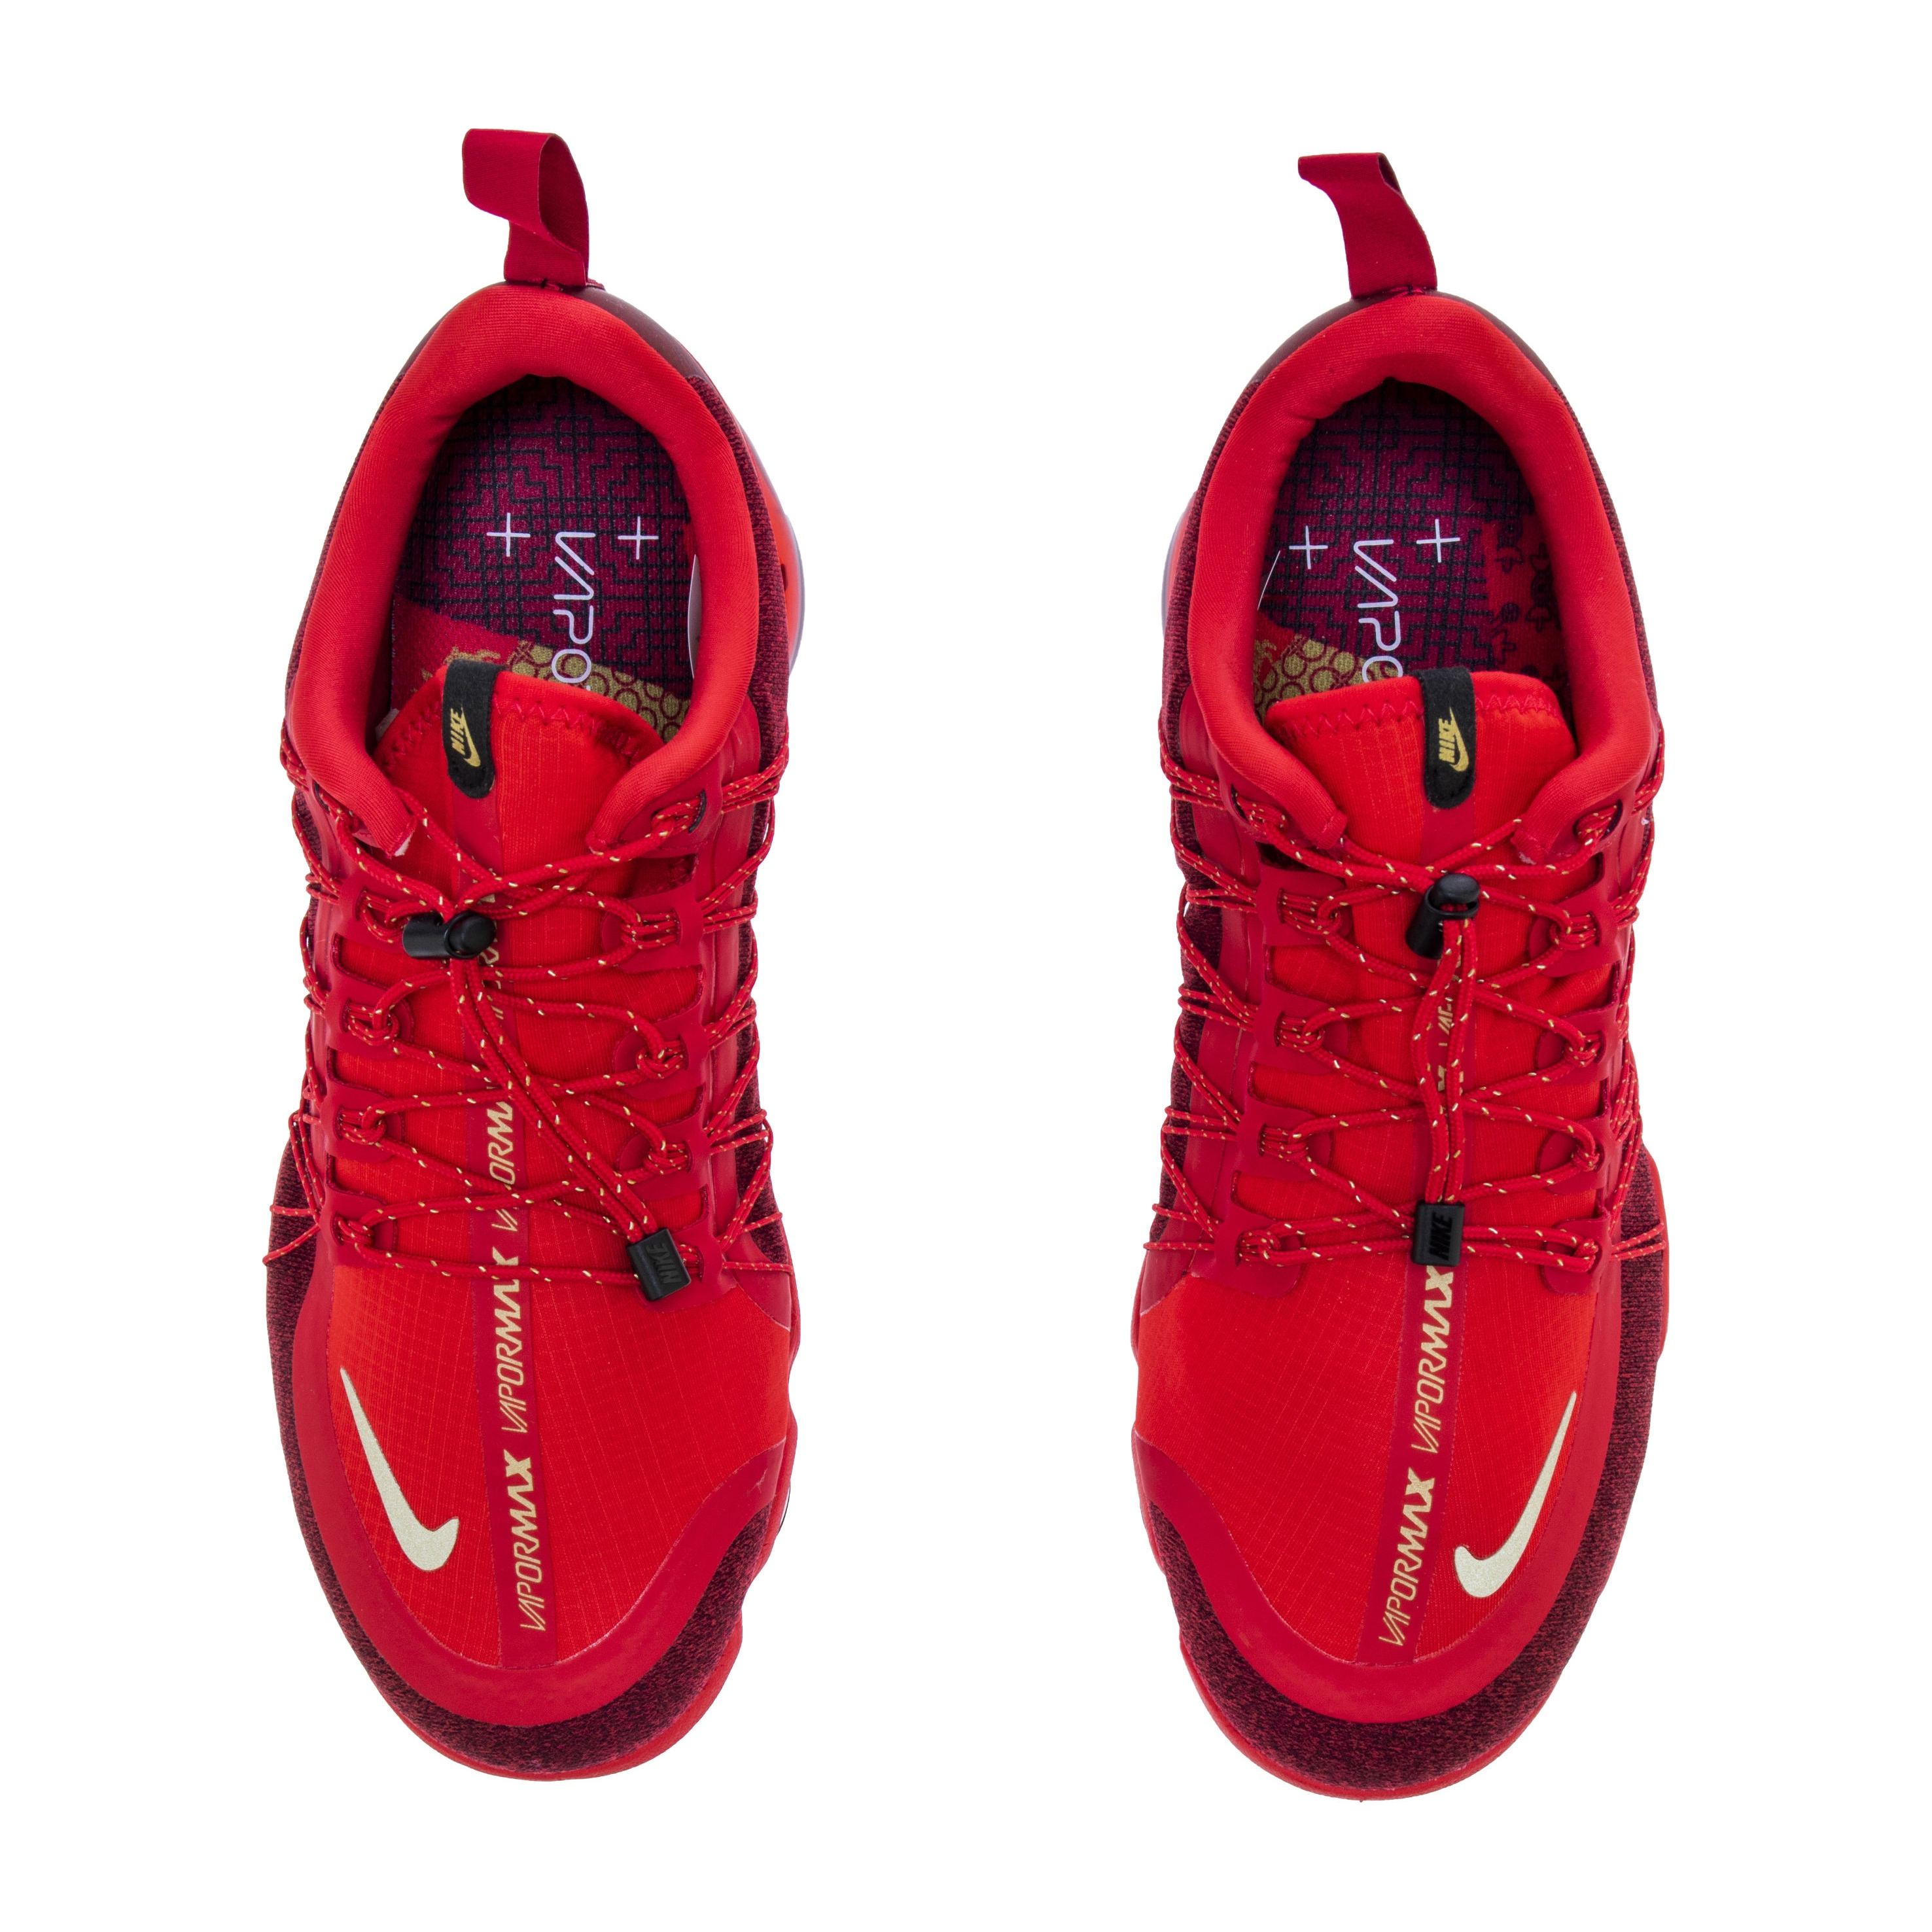 0a7f77572bad2 NIKE AIR VAPORMAX RUN UTILITY CANYON RED BLACK 3 - WearTesters